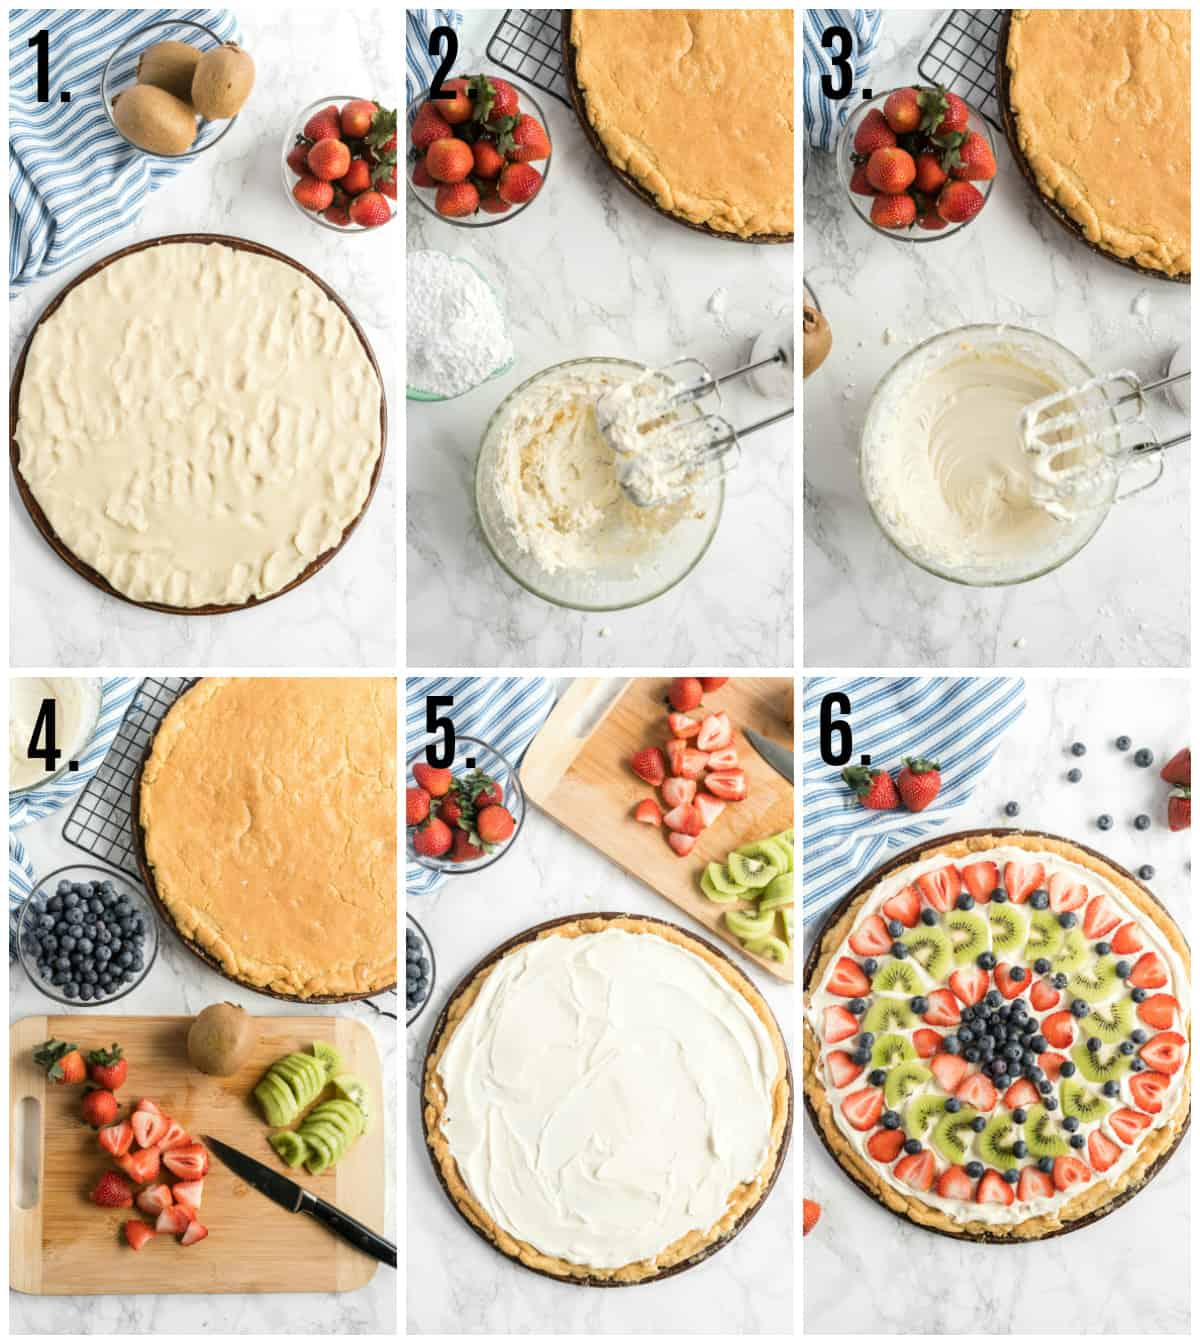 Step by step photos on how to make fruit pizza